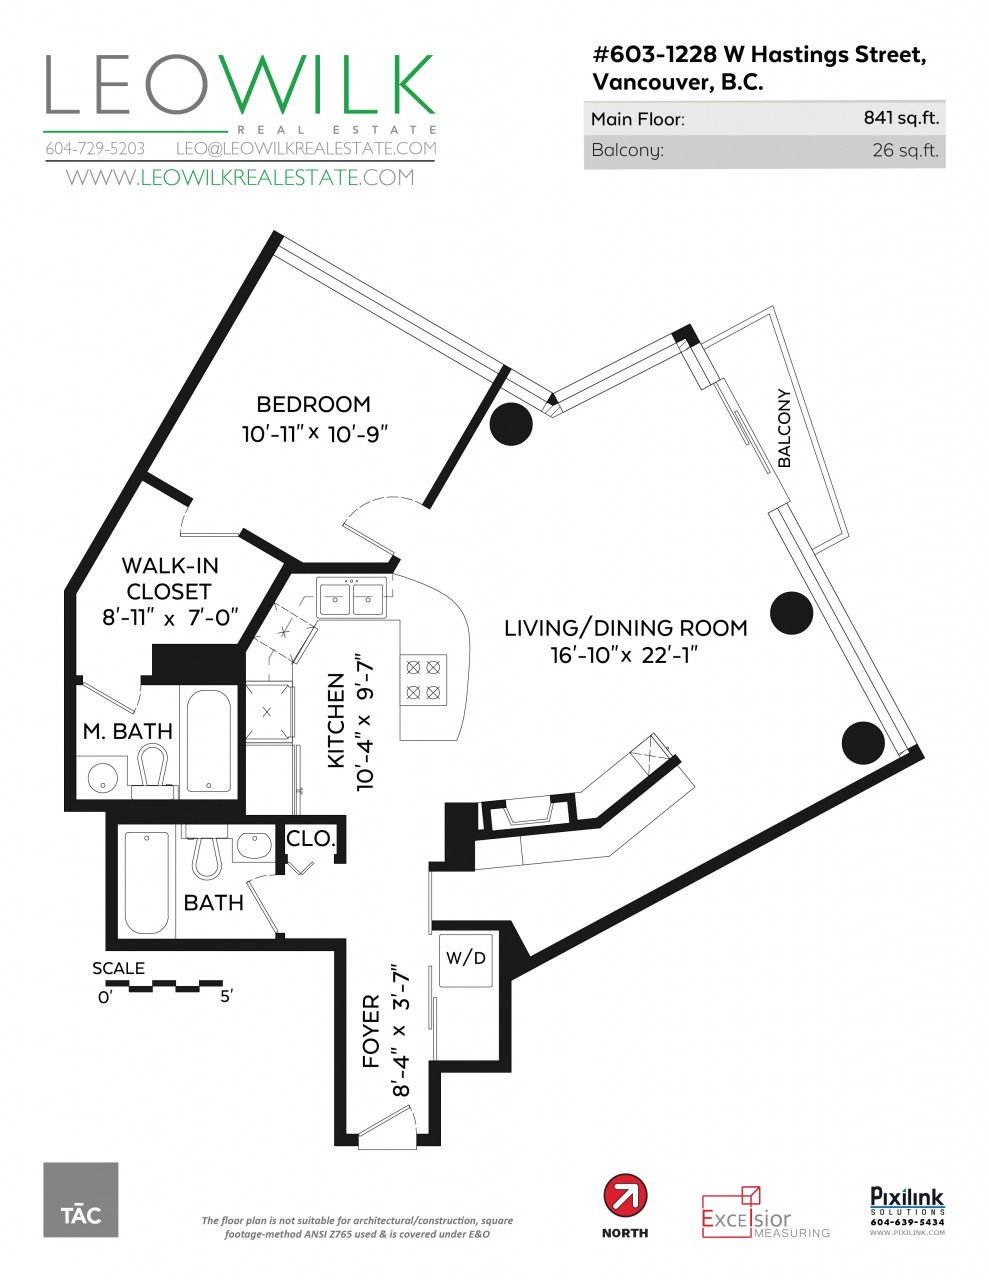 100 Vancouver Floor Plans Vancouver Wa Evergreen Park Floor Plans Apartments In Vancouver